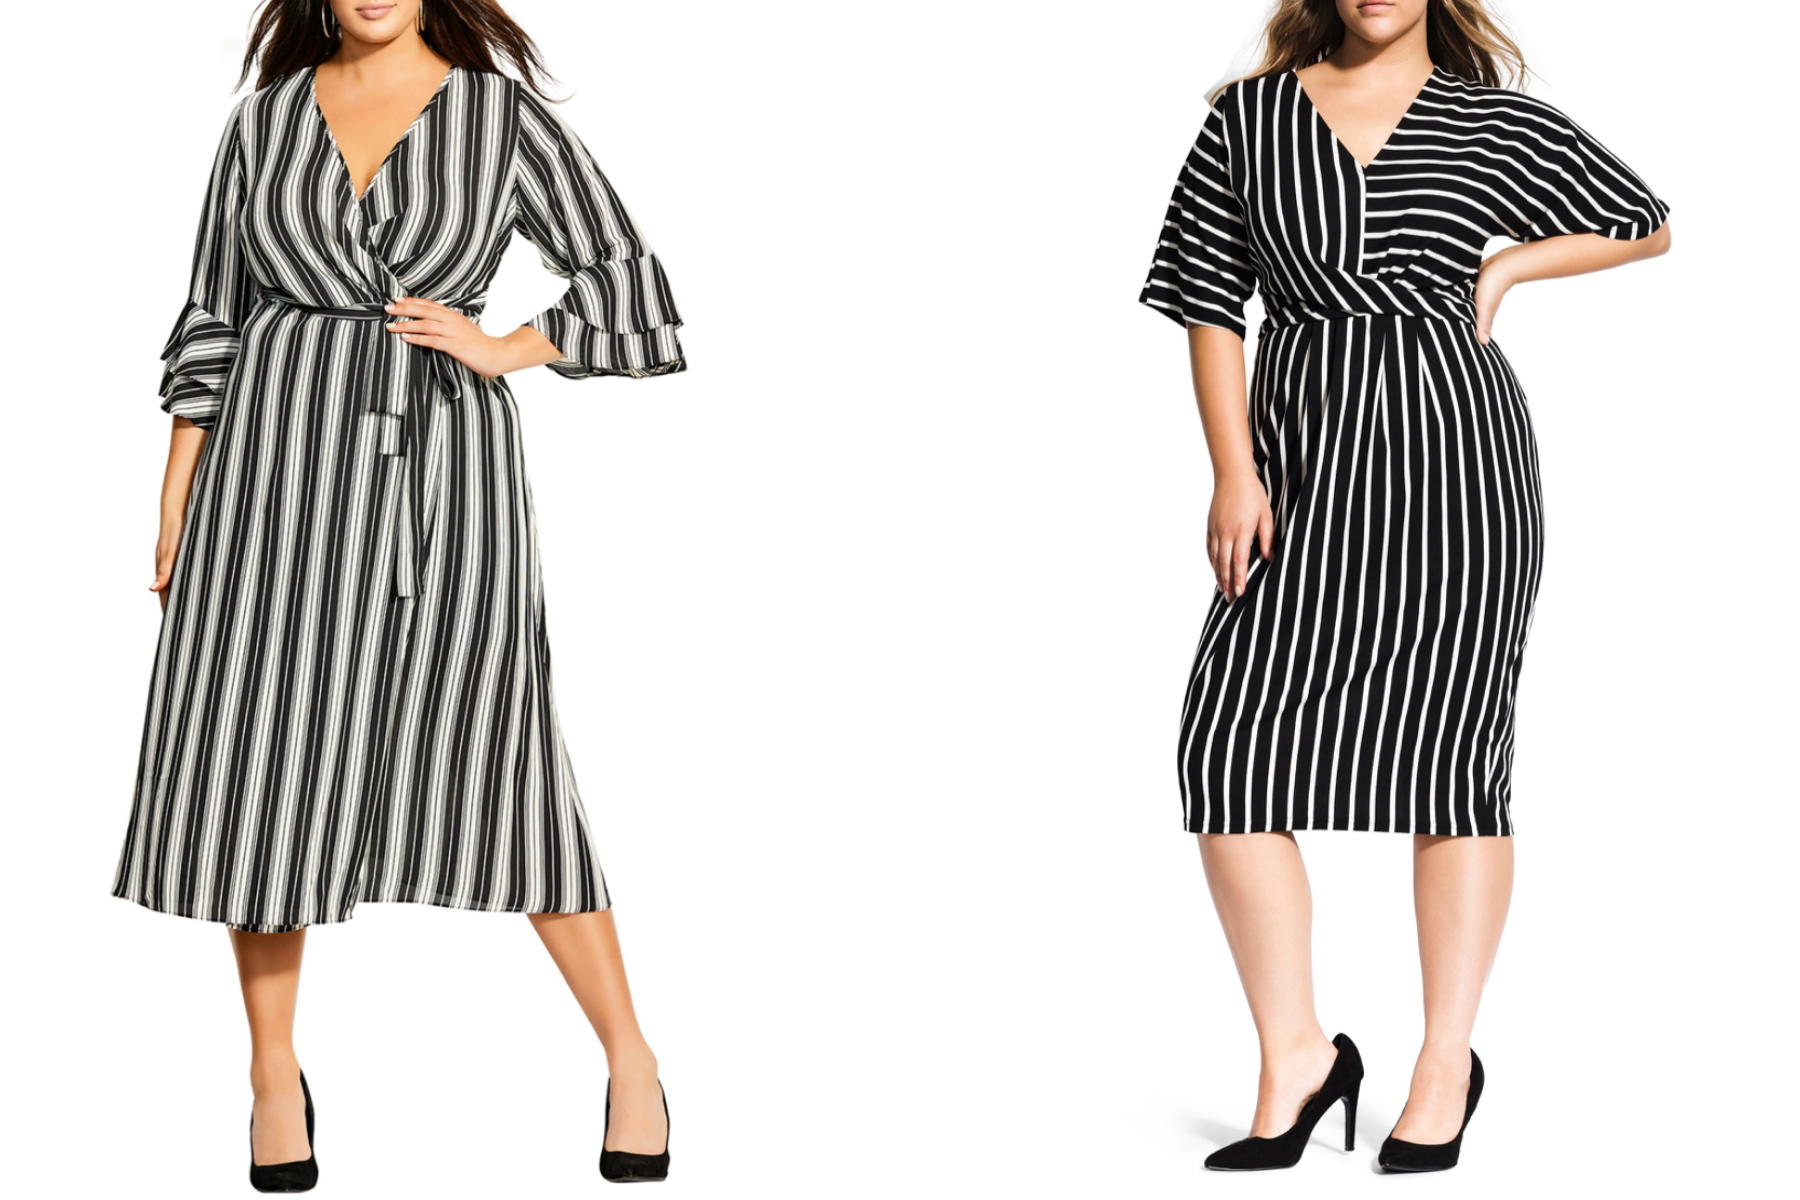 Dressing Rules To Look Taller and Slimmer!